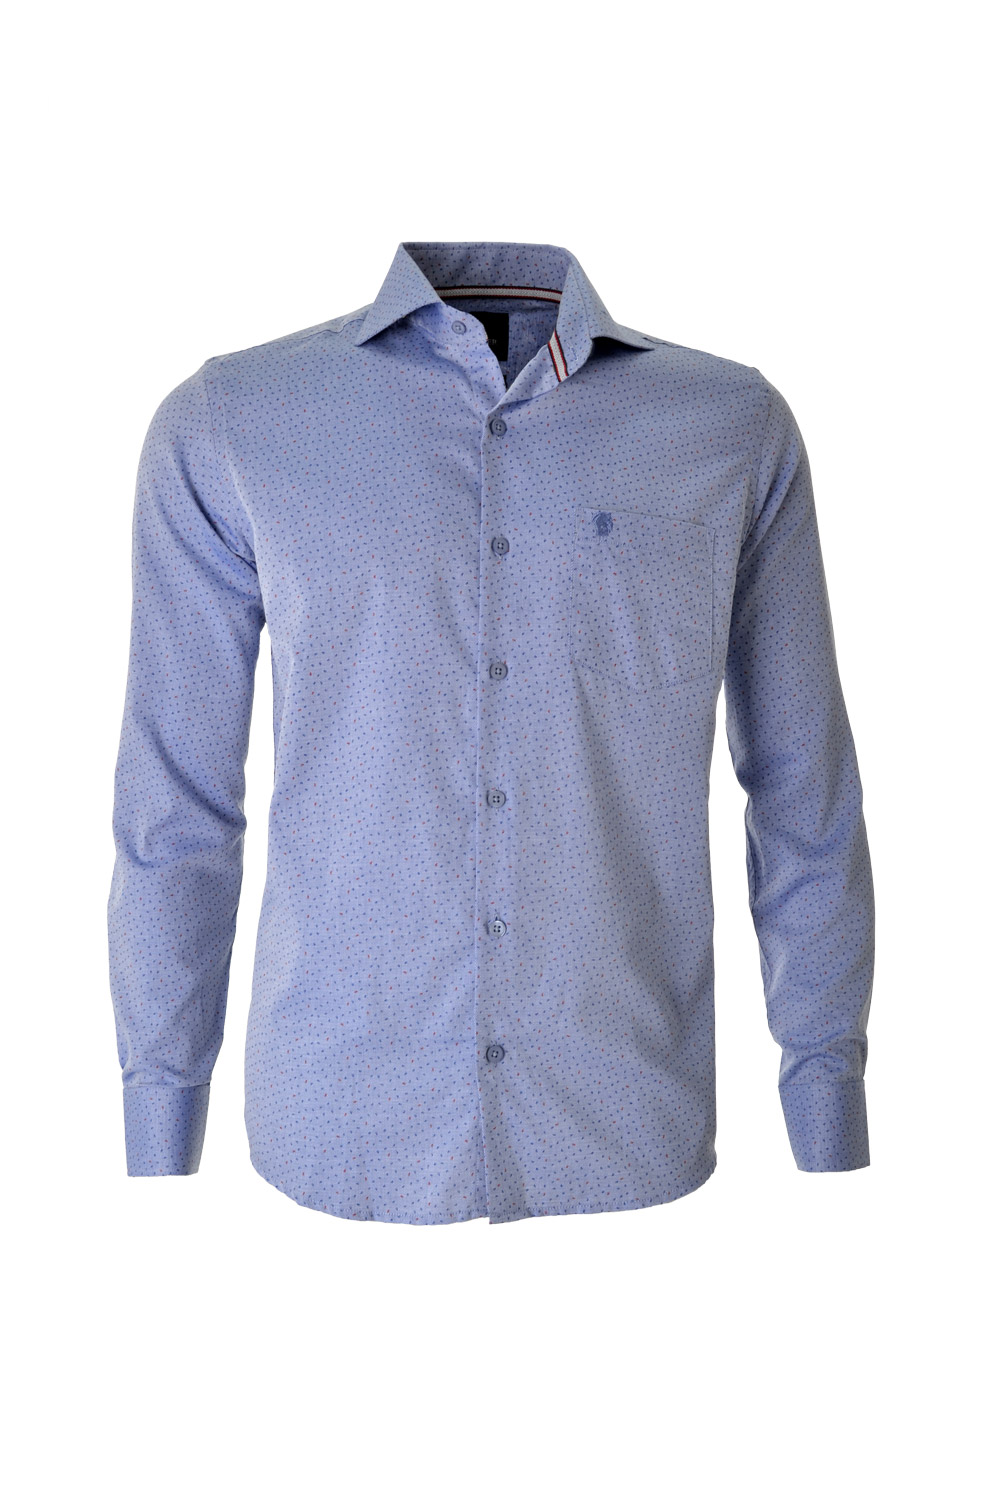 CAMISA ML FASHION ALGODAO FIO TINTO ESTAMPA MICRO